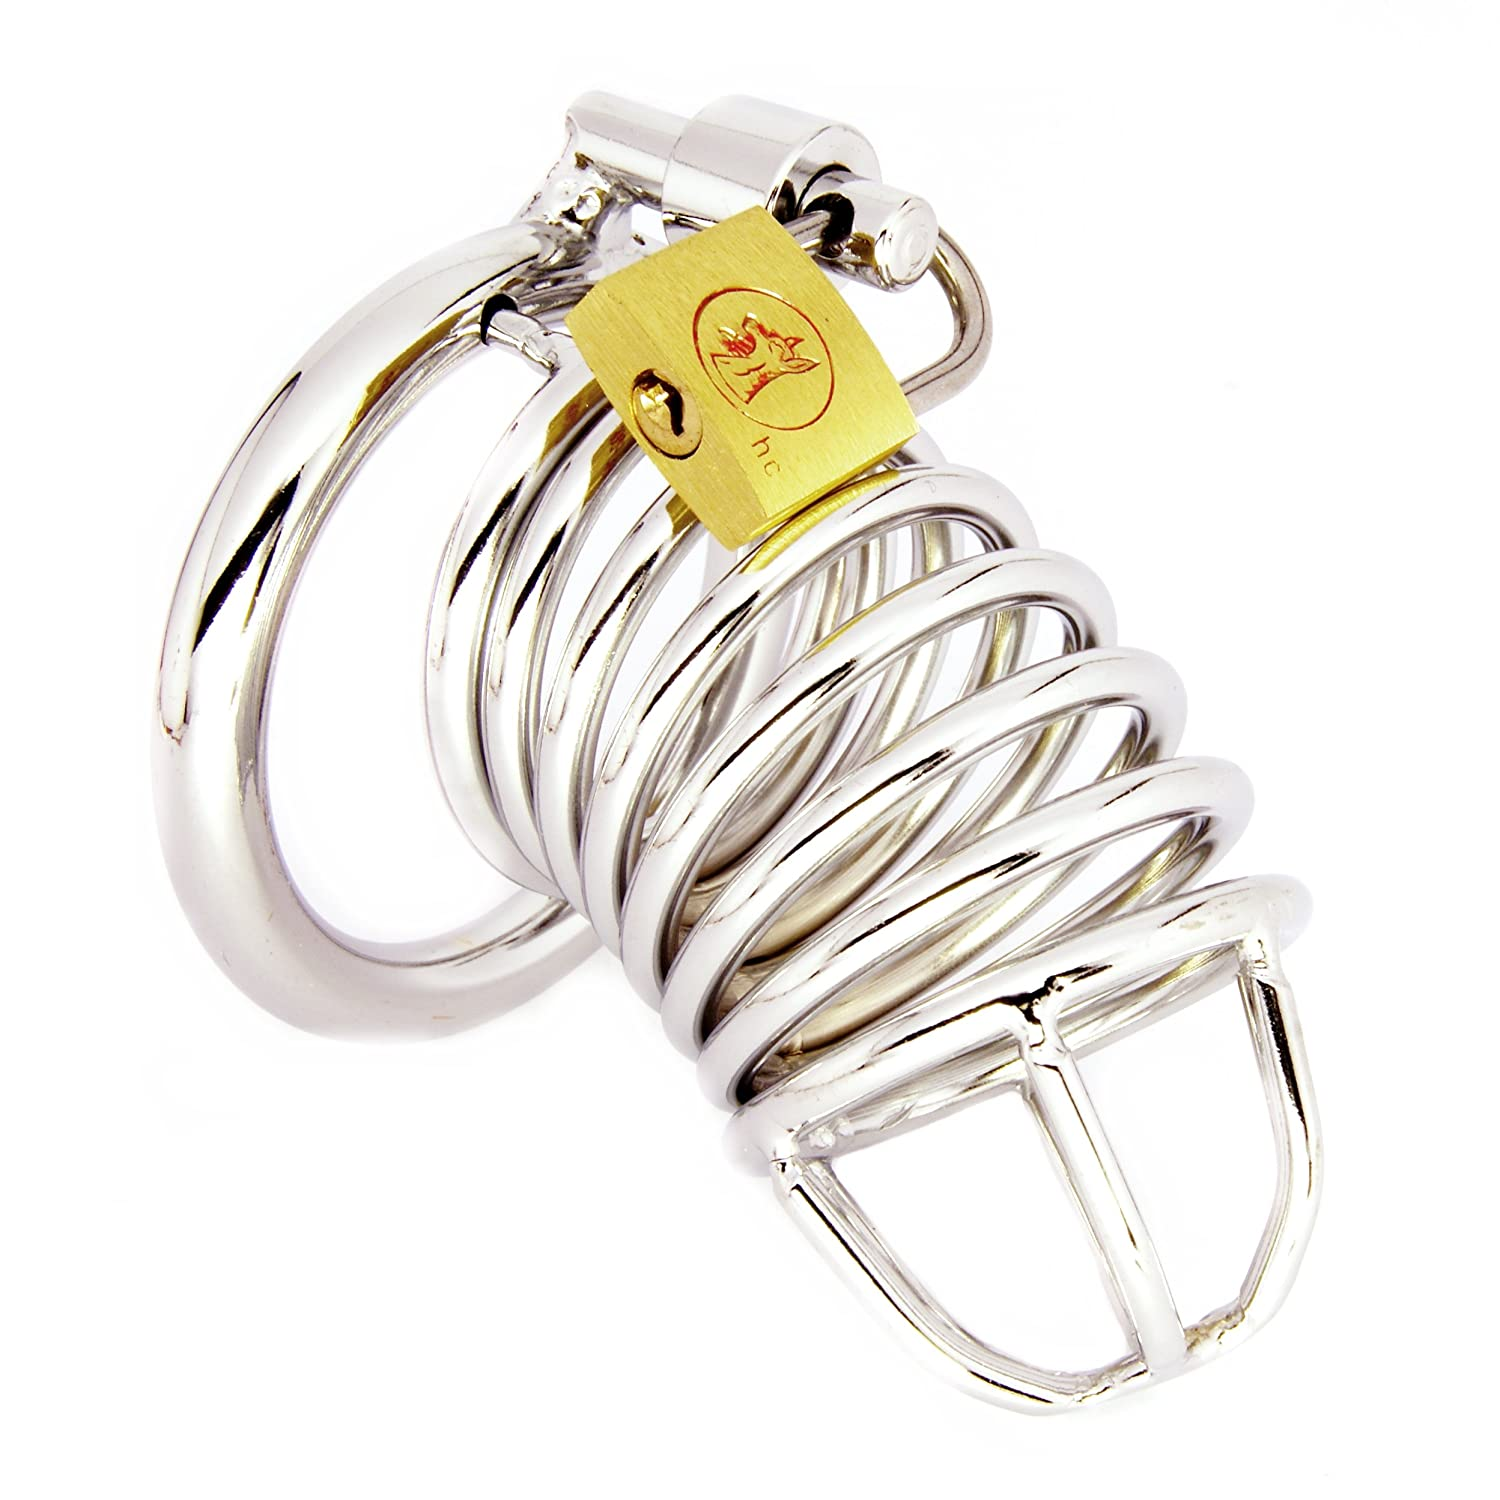 yaoota price en caged product arabia from ring sivvi sa saudi in rings set midi